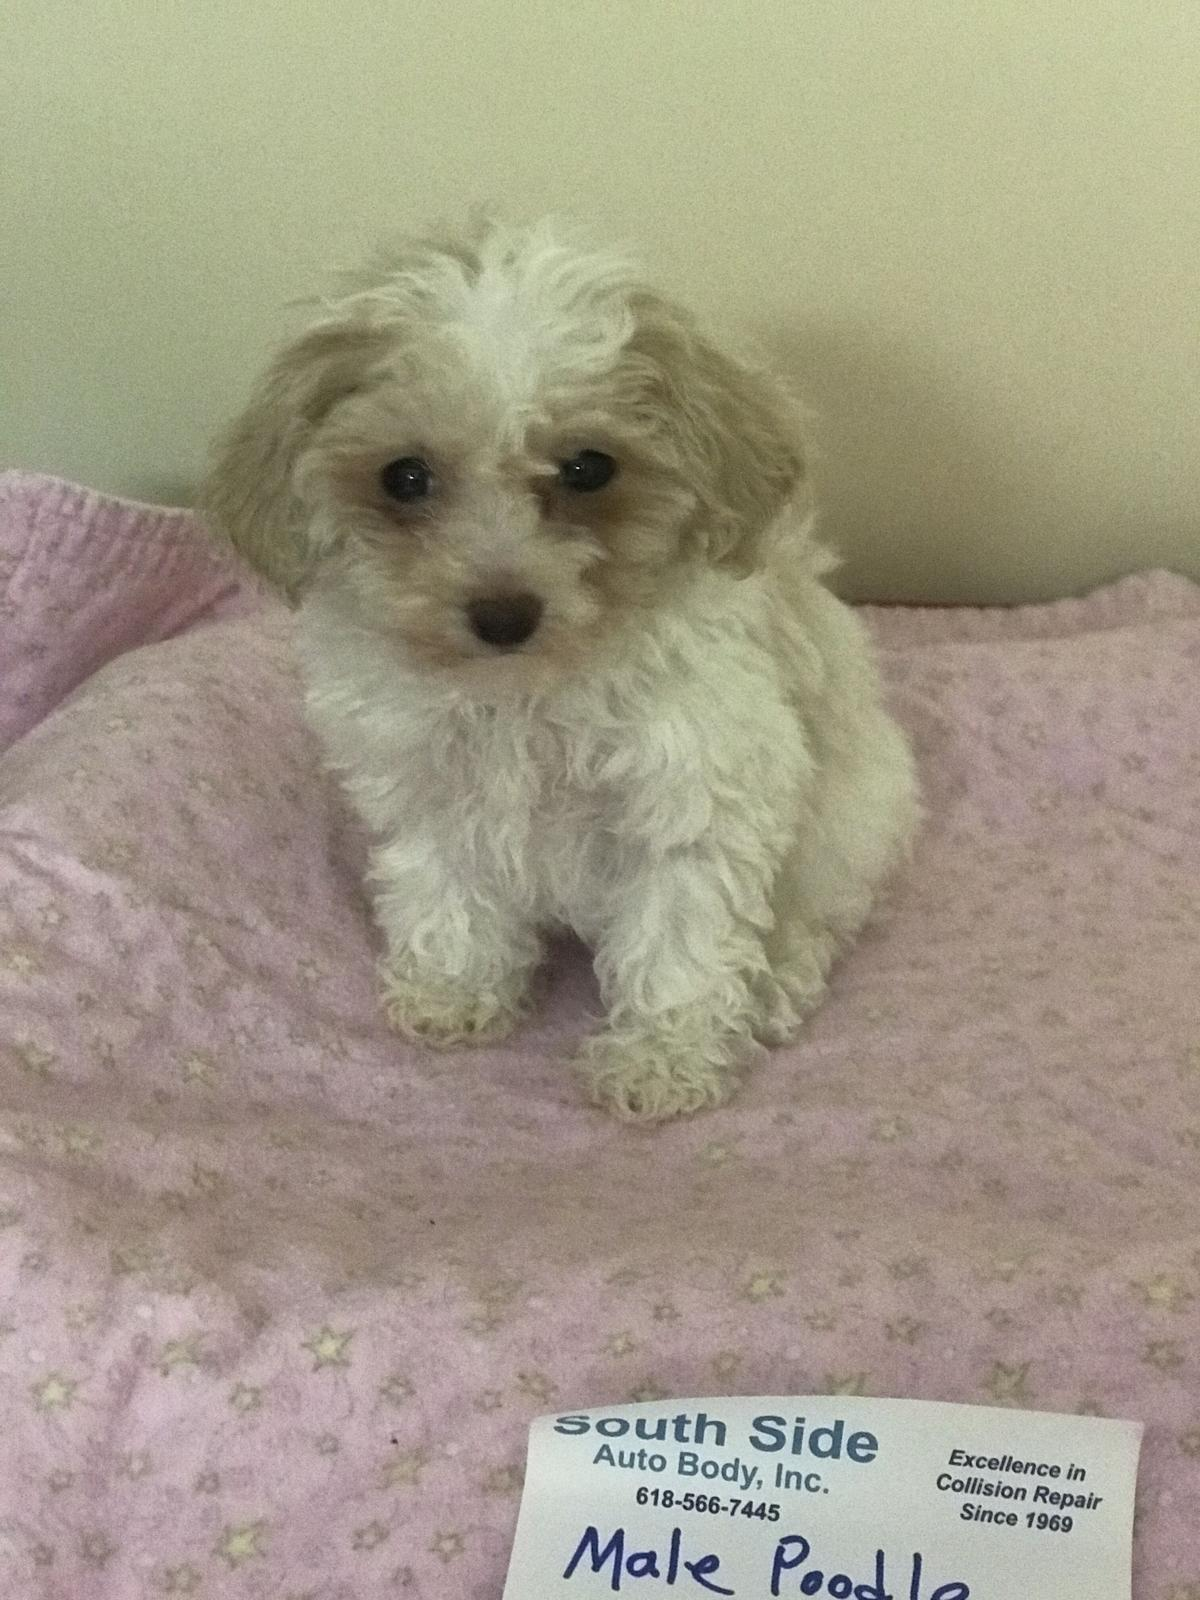 Puppies Poodle image 1